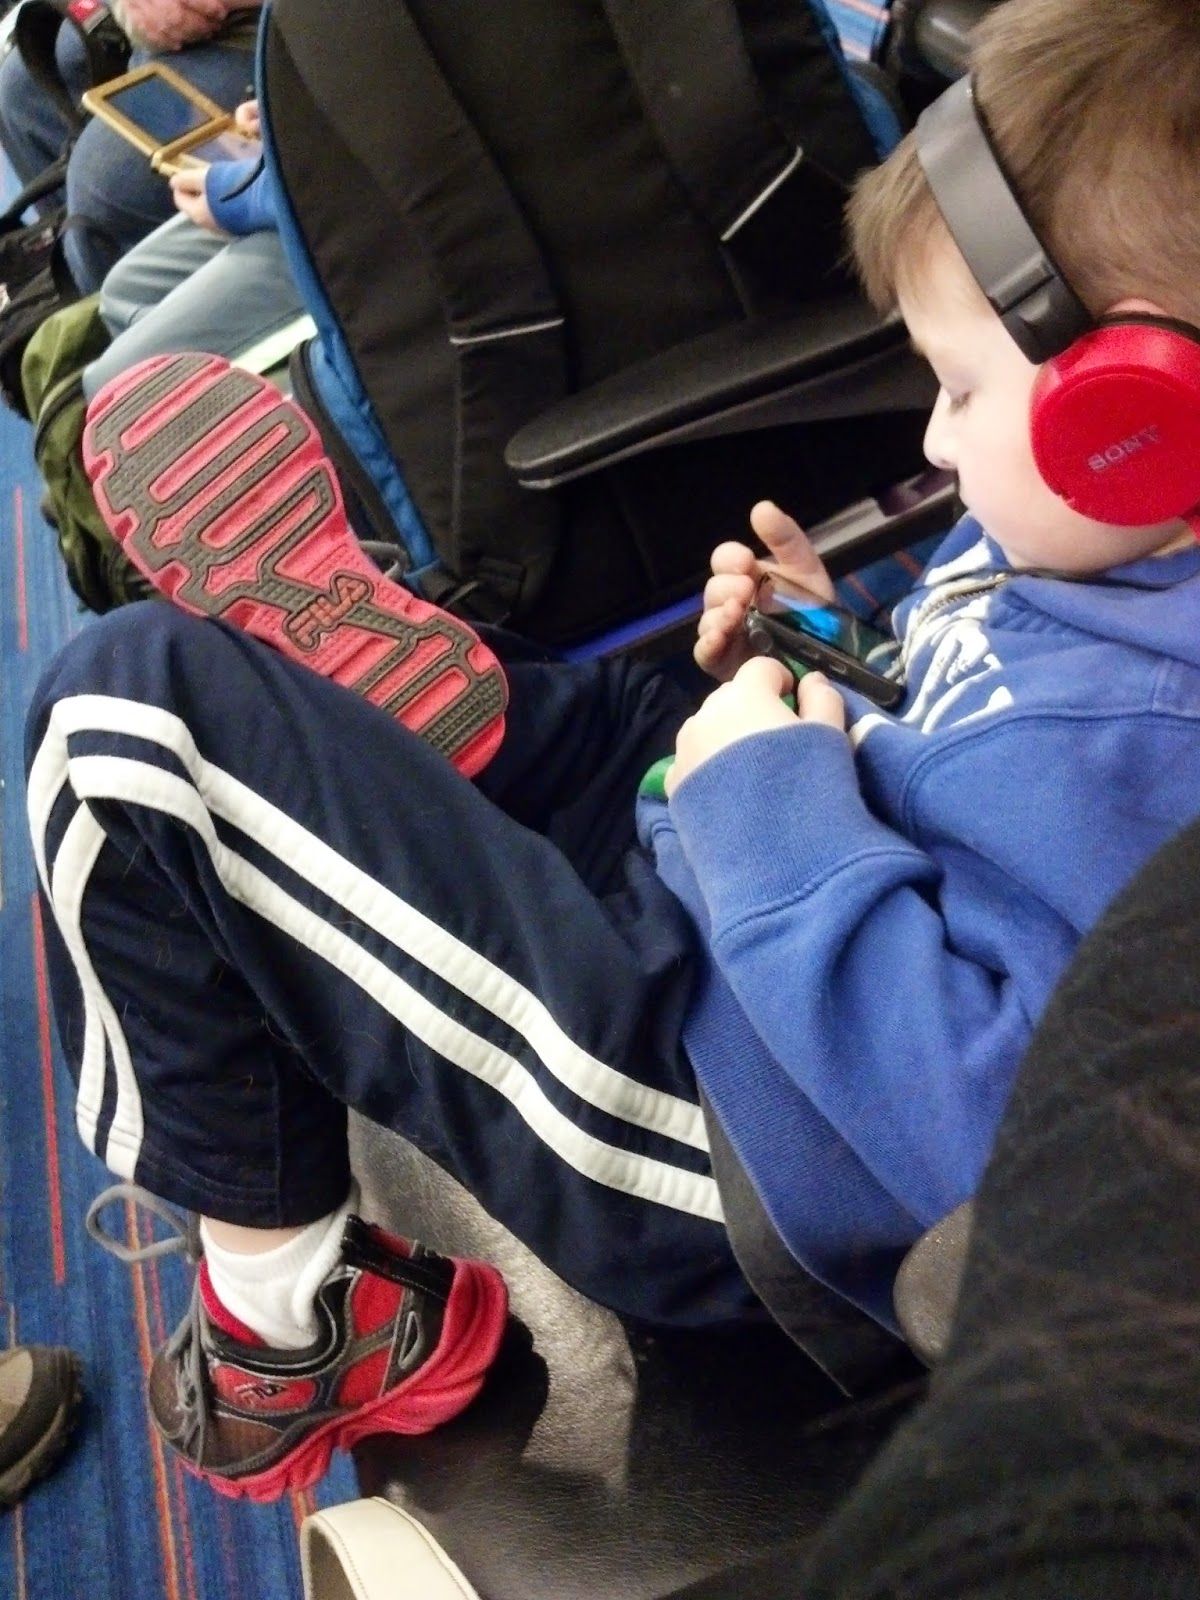 10 tips for flying to disney world with kids with ADHD